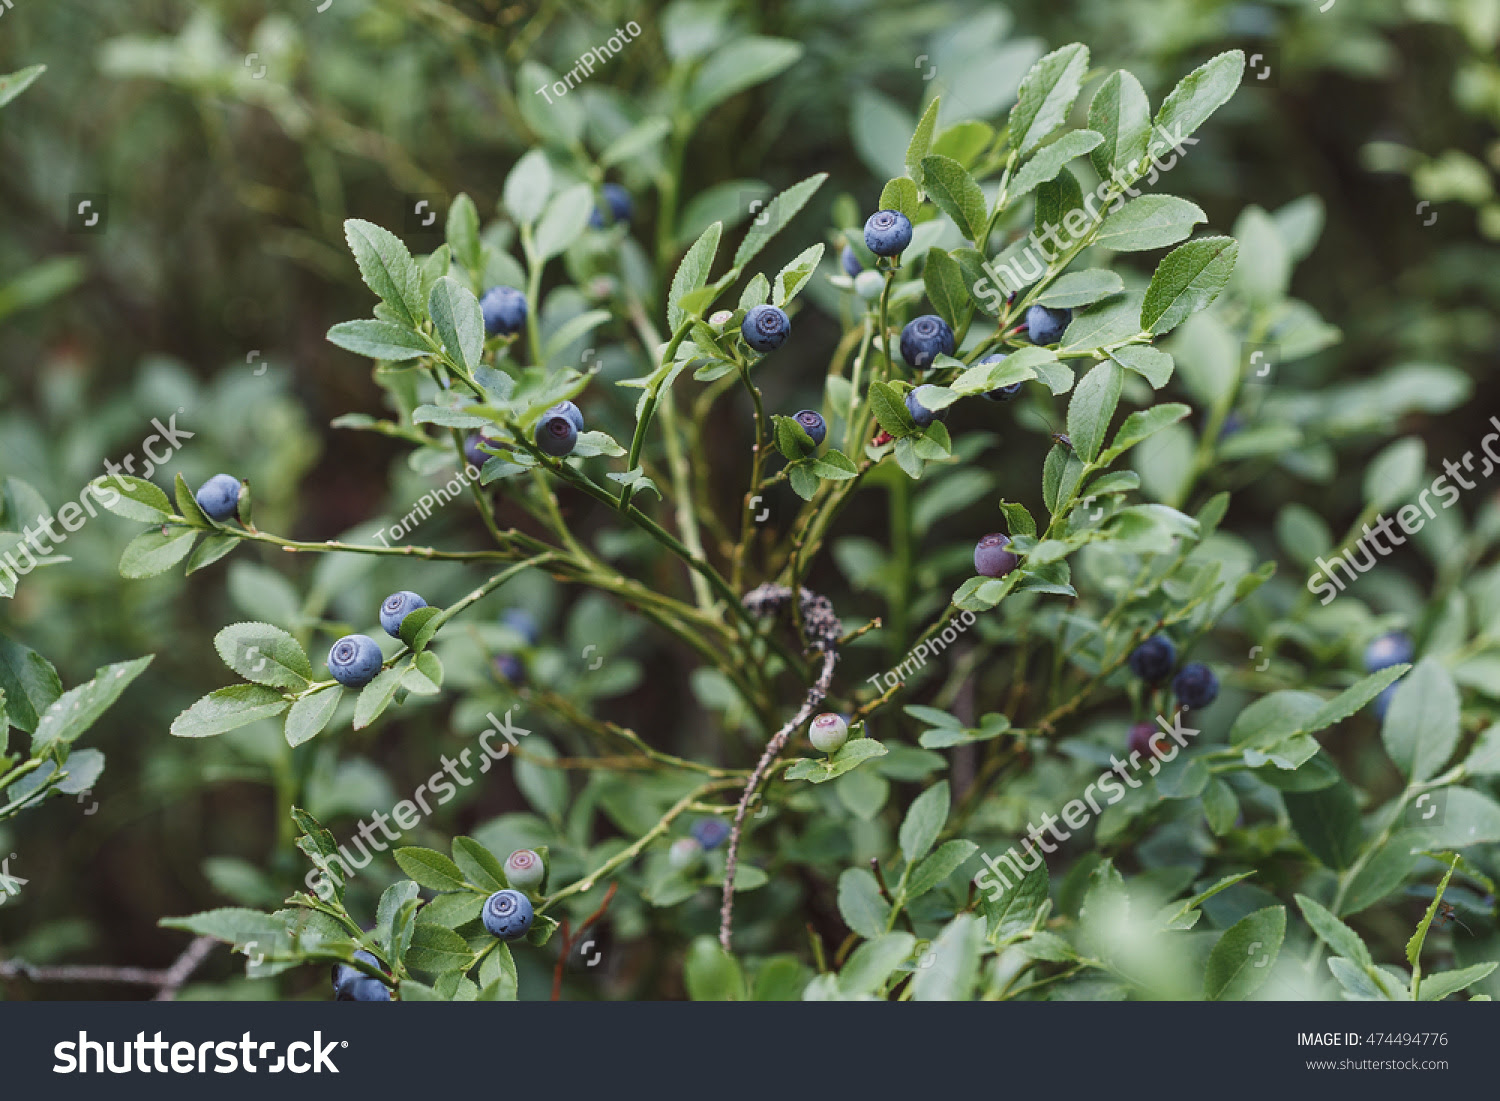 autumn, autumnal, backdrop, berry, bilberry, black, blaeberry, blue, blueberry, blurred, bush, closeup, eat, fade, focus, food, forest, fresh, freshness, fruit, green, growing, healthful, healthy, herbal, huckleberry, hurtleberry, juicy, leaf, macro, natural, nature, nutrition, organic, plant, raw, ripe, rustic, shallow, summer, sweet, uncultivated, vintage, wallpaper, whortleberry, wild